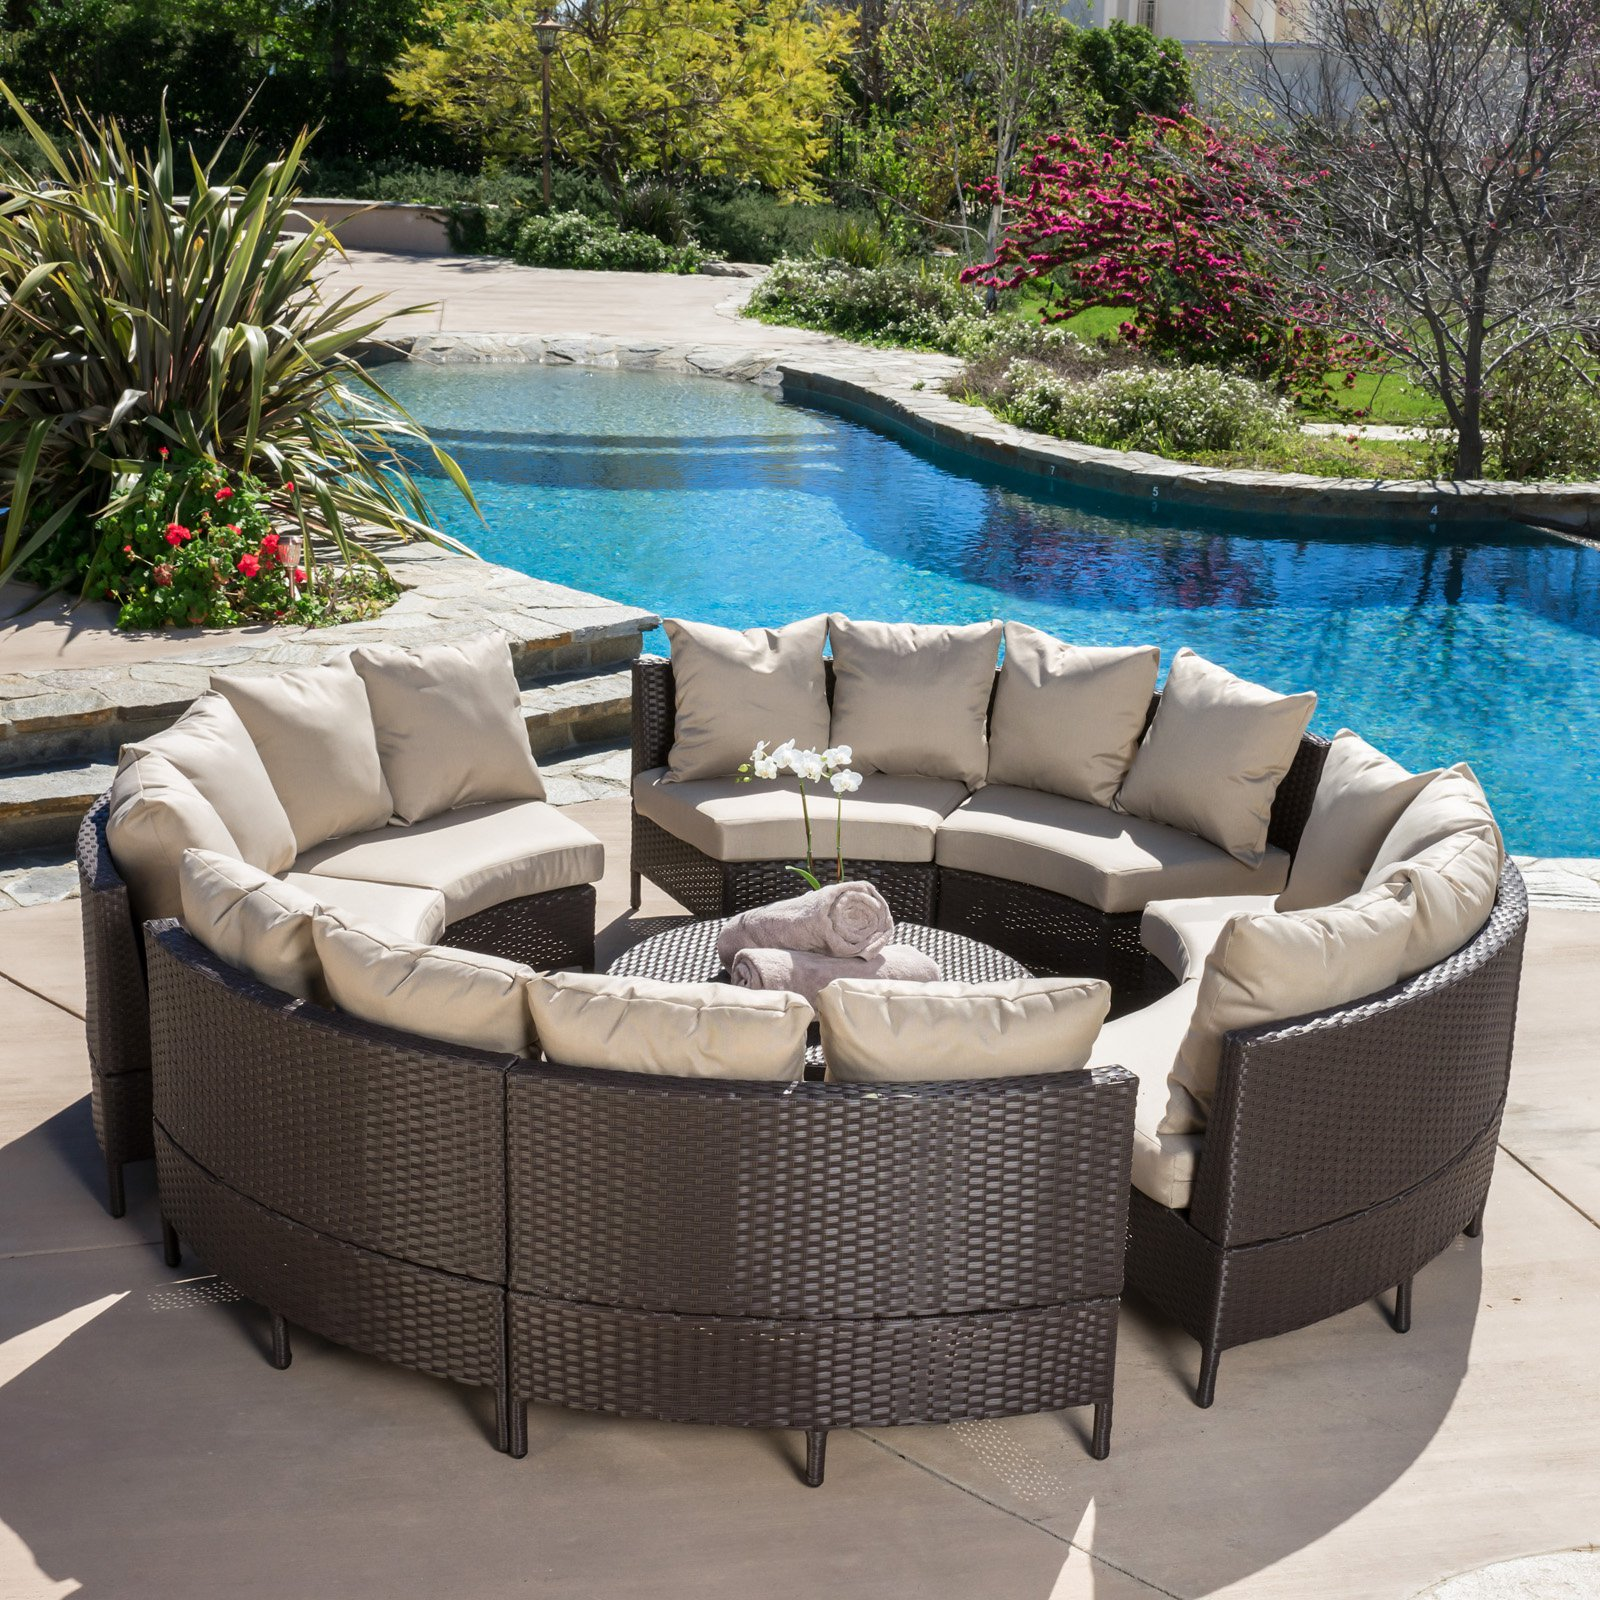 Best Selling Home Decor Avalon Wicker 10 Piece Patio